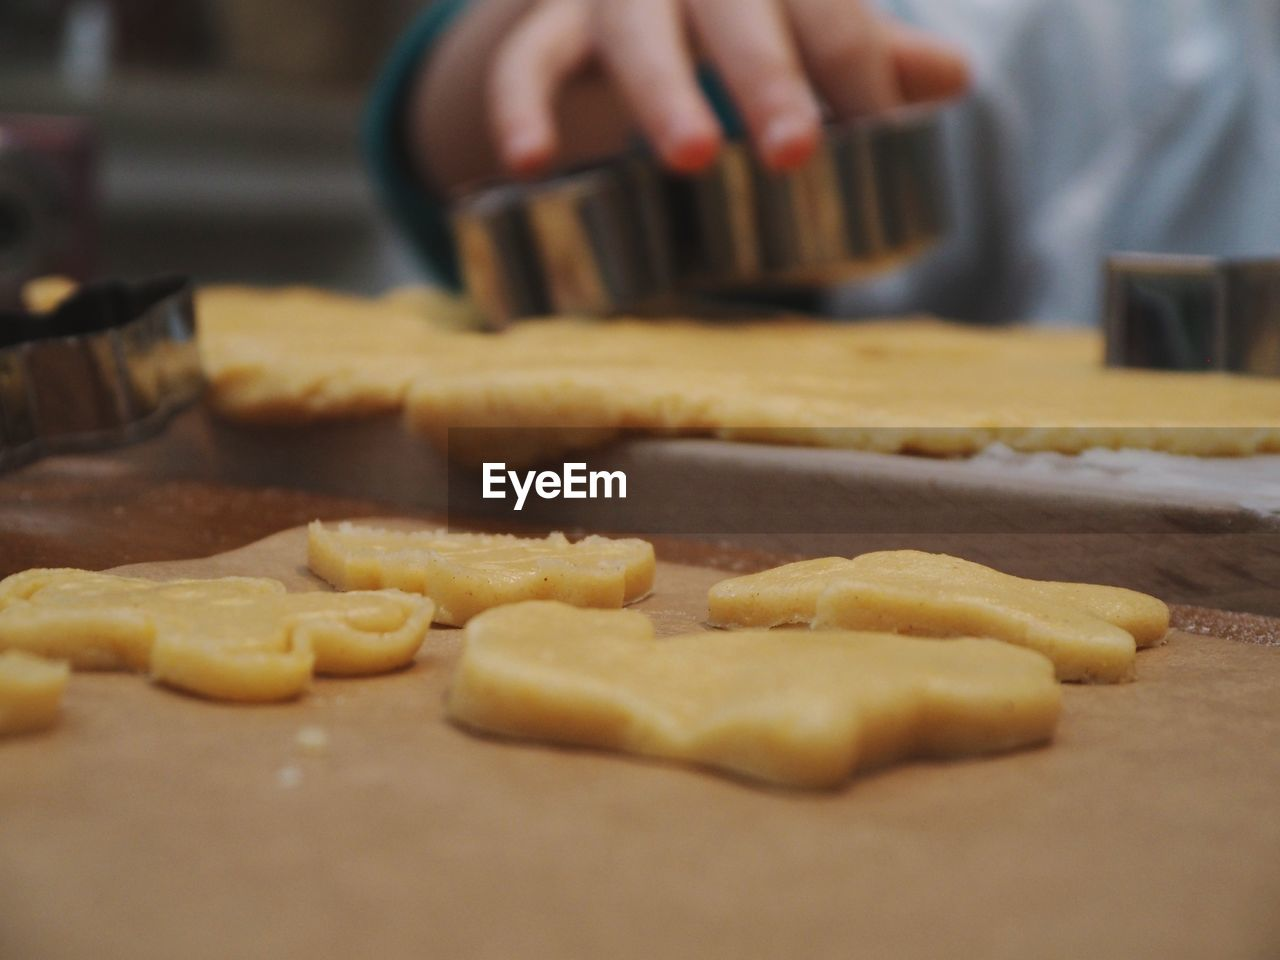 food, food and drink, selective focus, preparation, indoors, freshness, dough, preparing food, cookie, hand, human hand, baked, sweet food, close-up, one person, human body part, domestic room, homemade, making, baking sheet